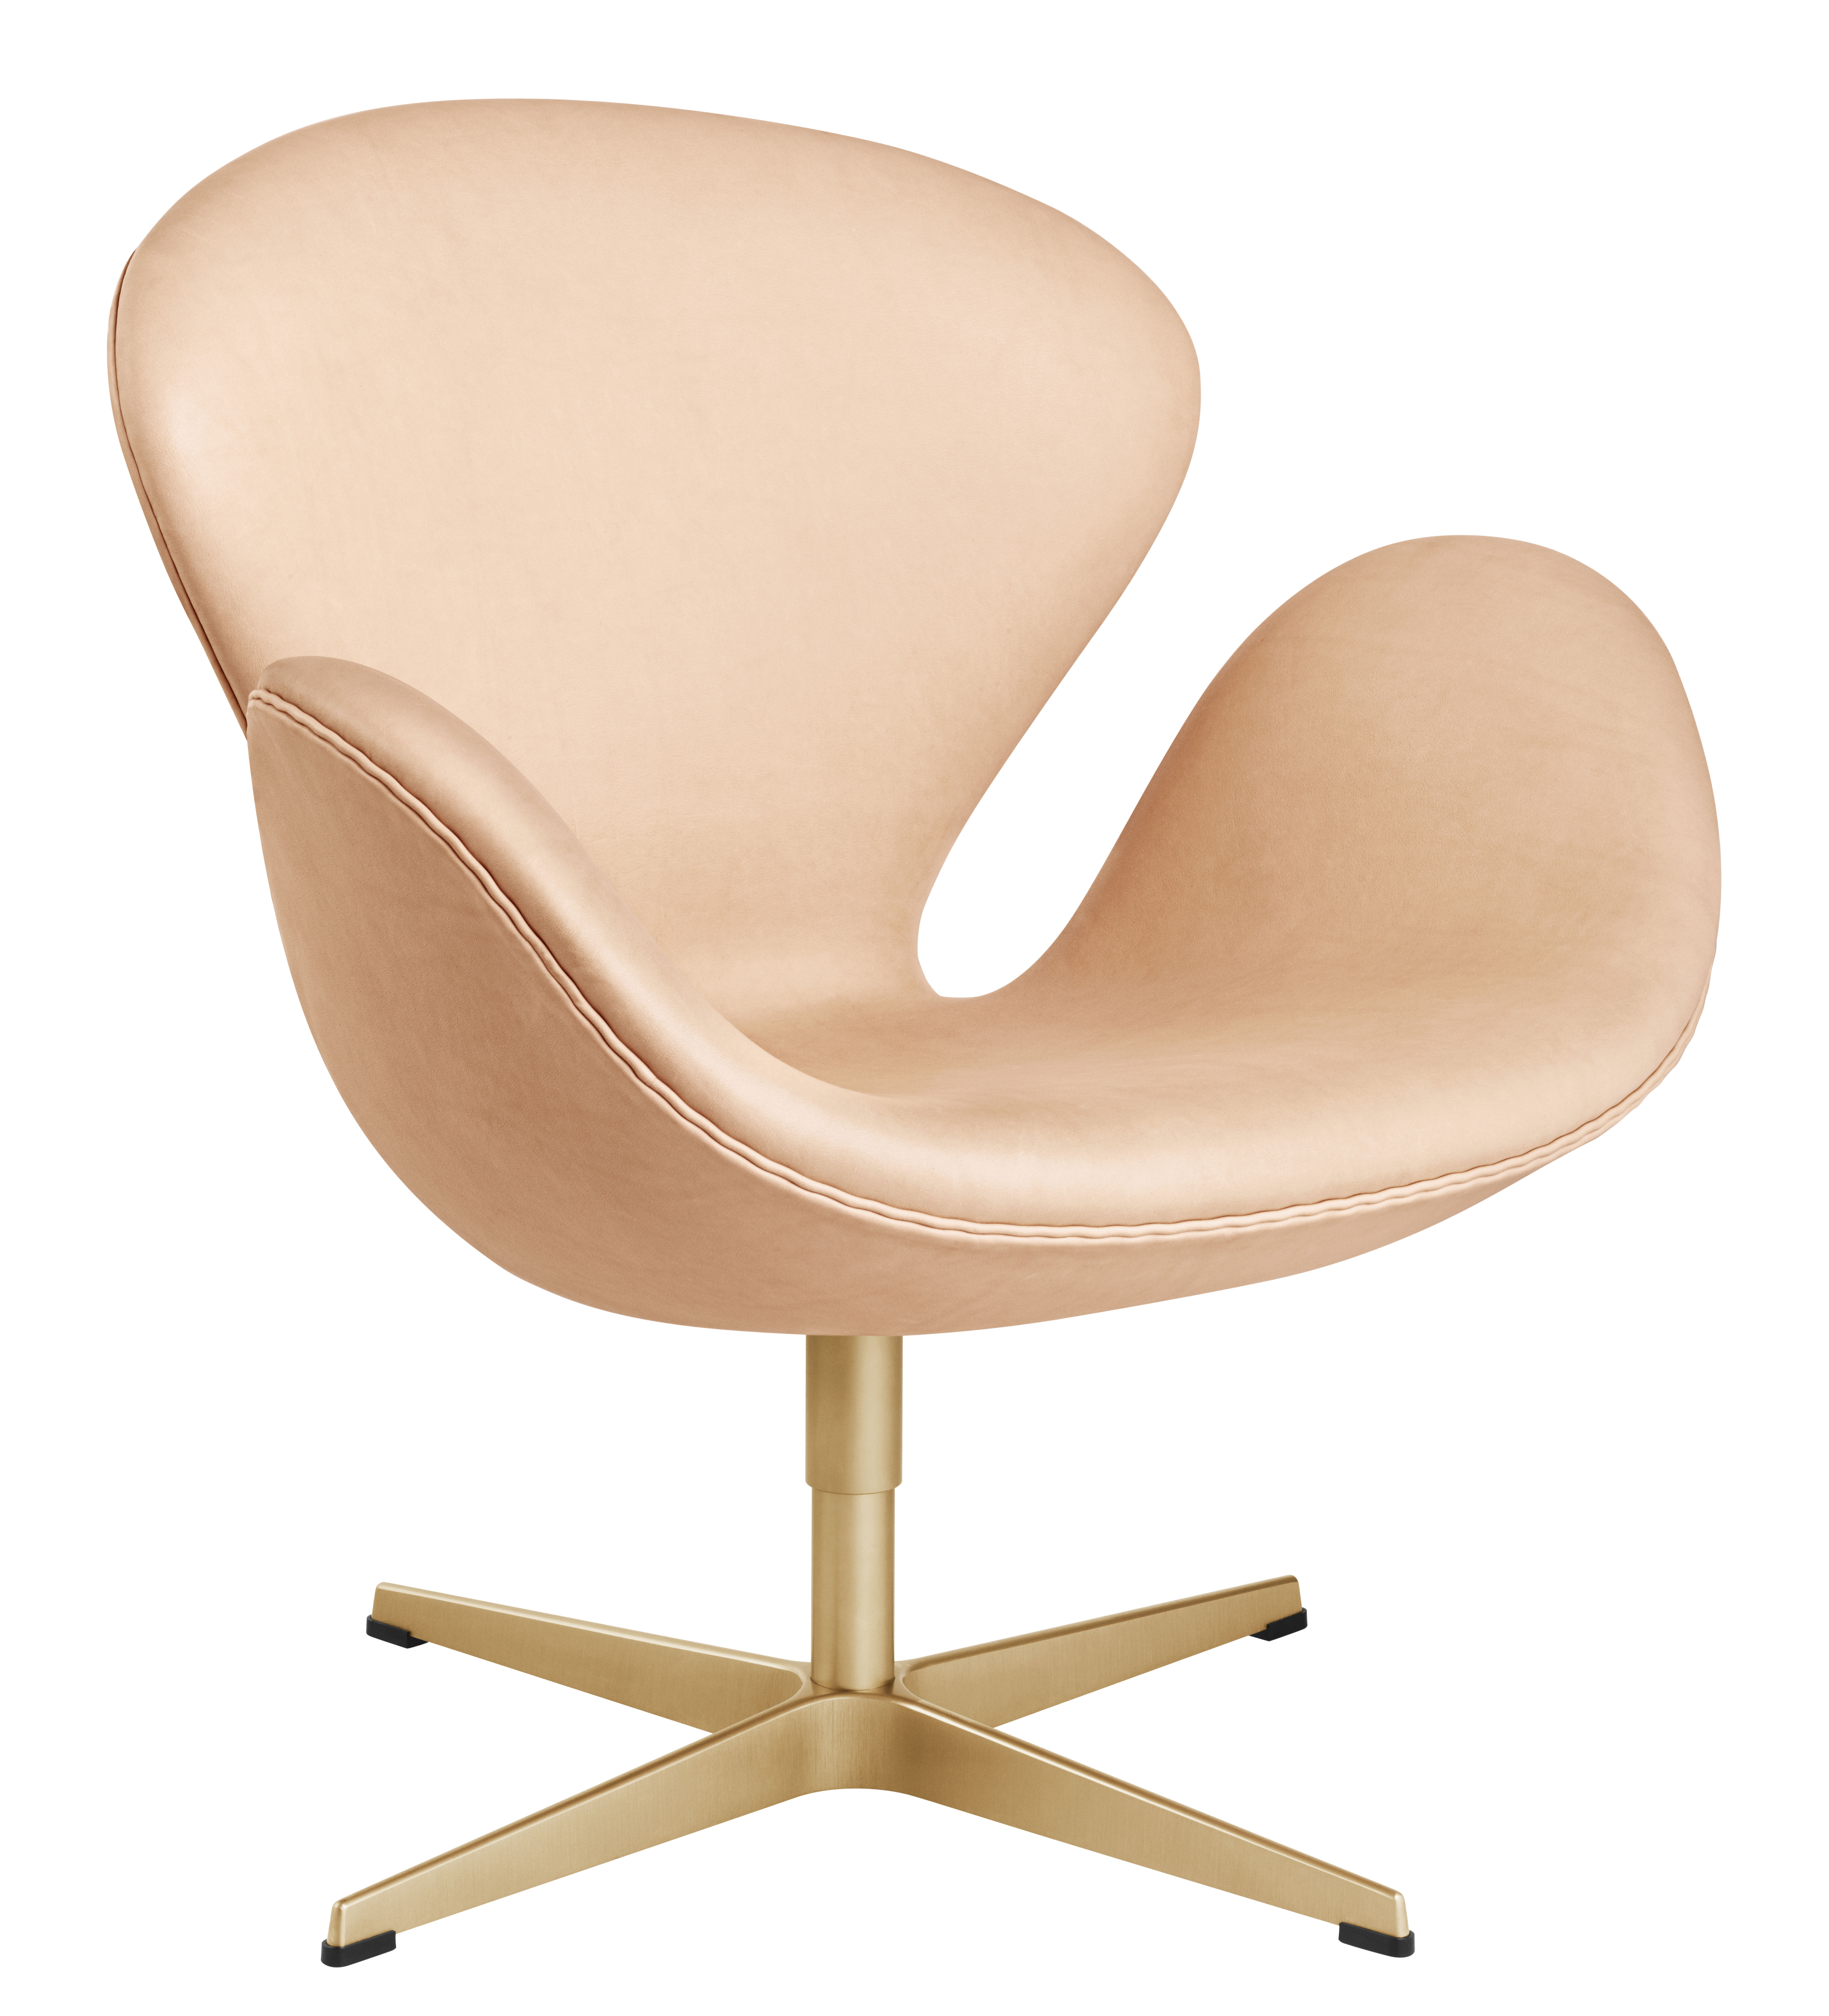 swivel chair keeps turning stacking resin chairs made in design contemporary furniture home decorating